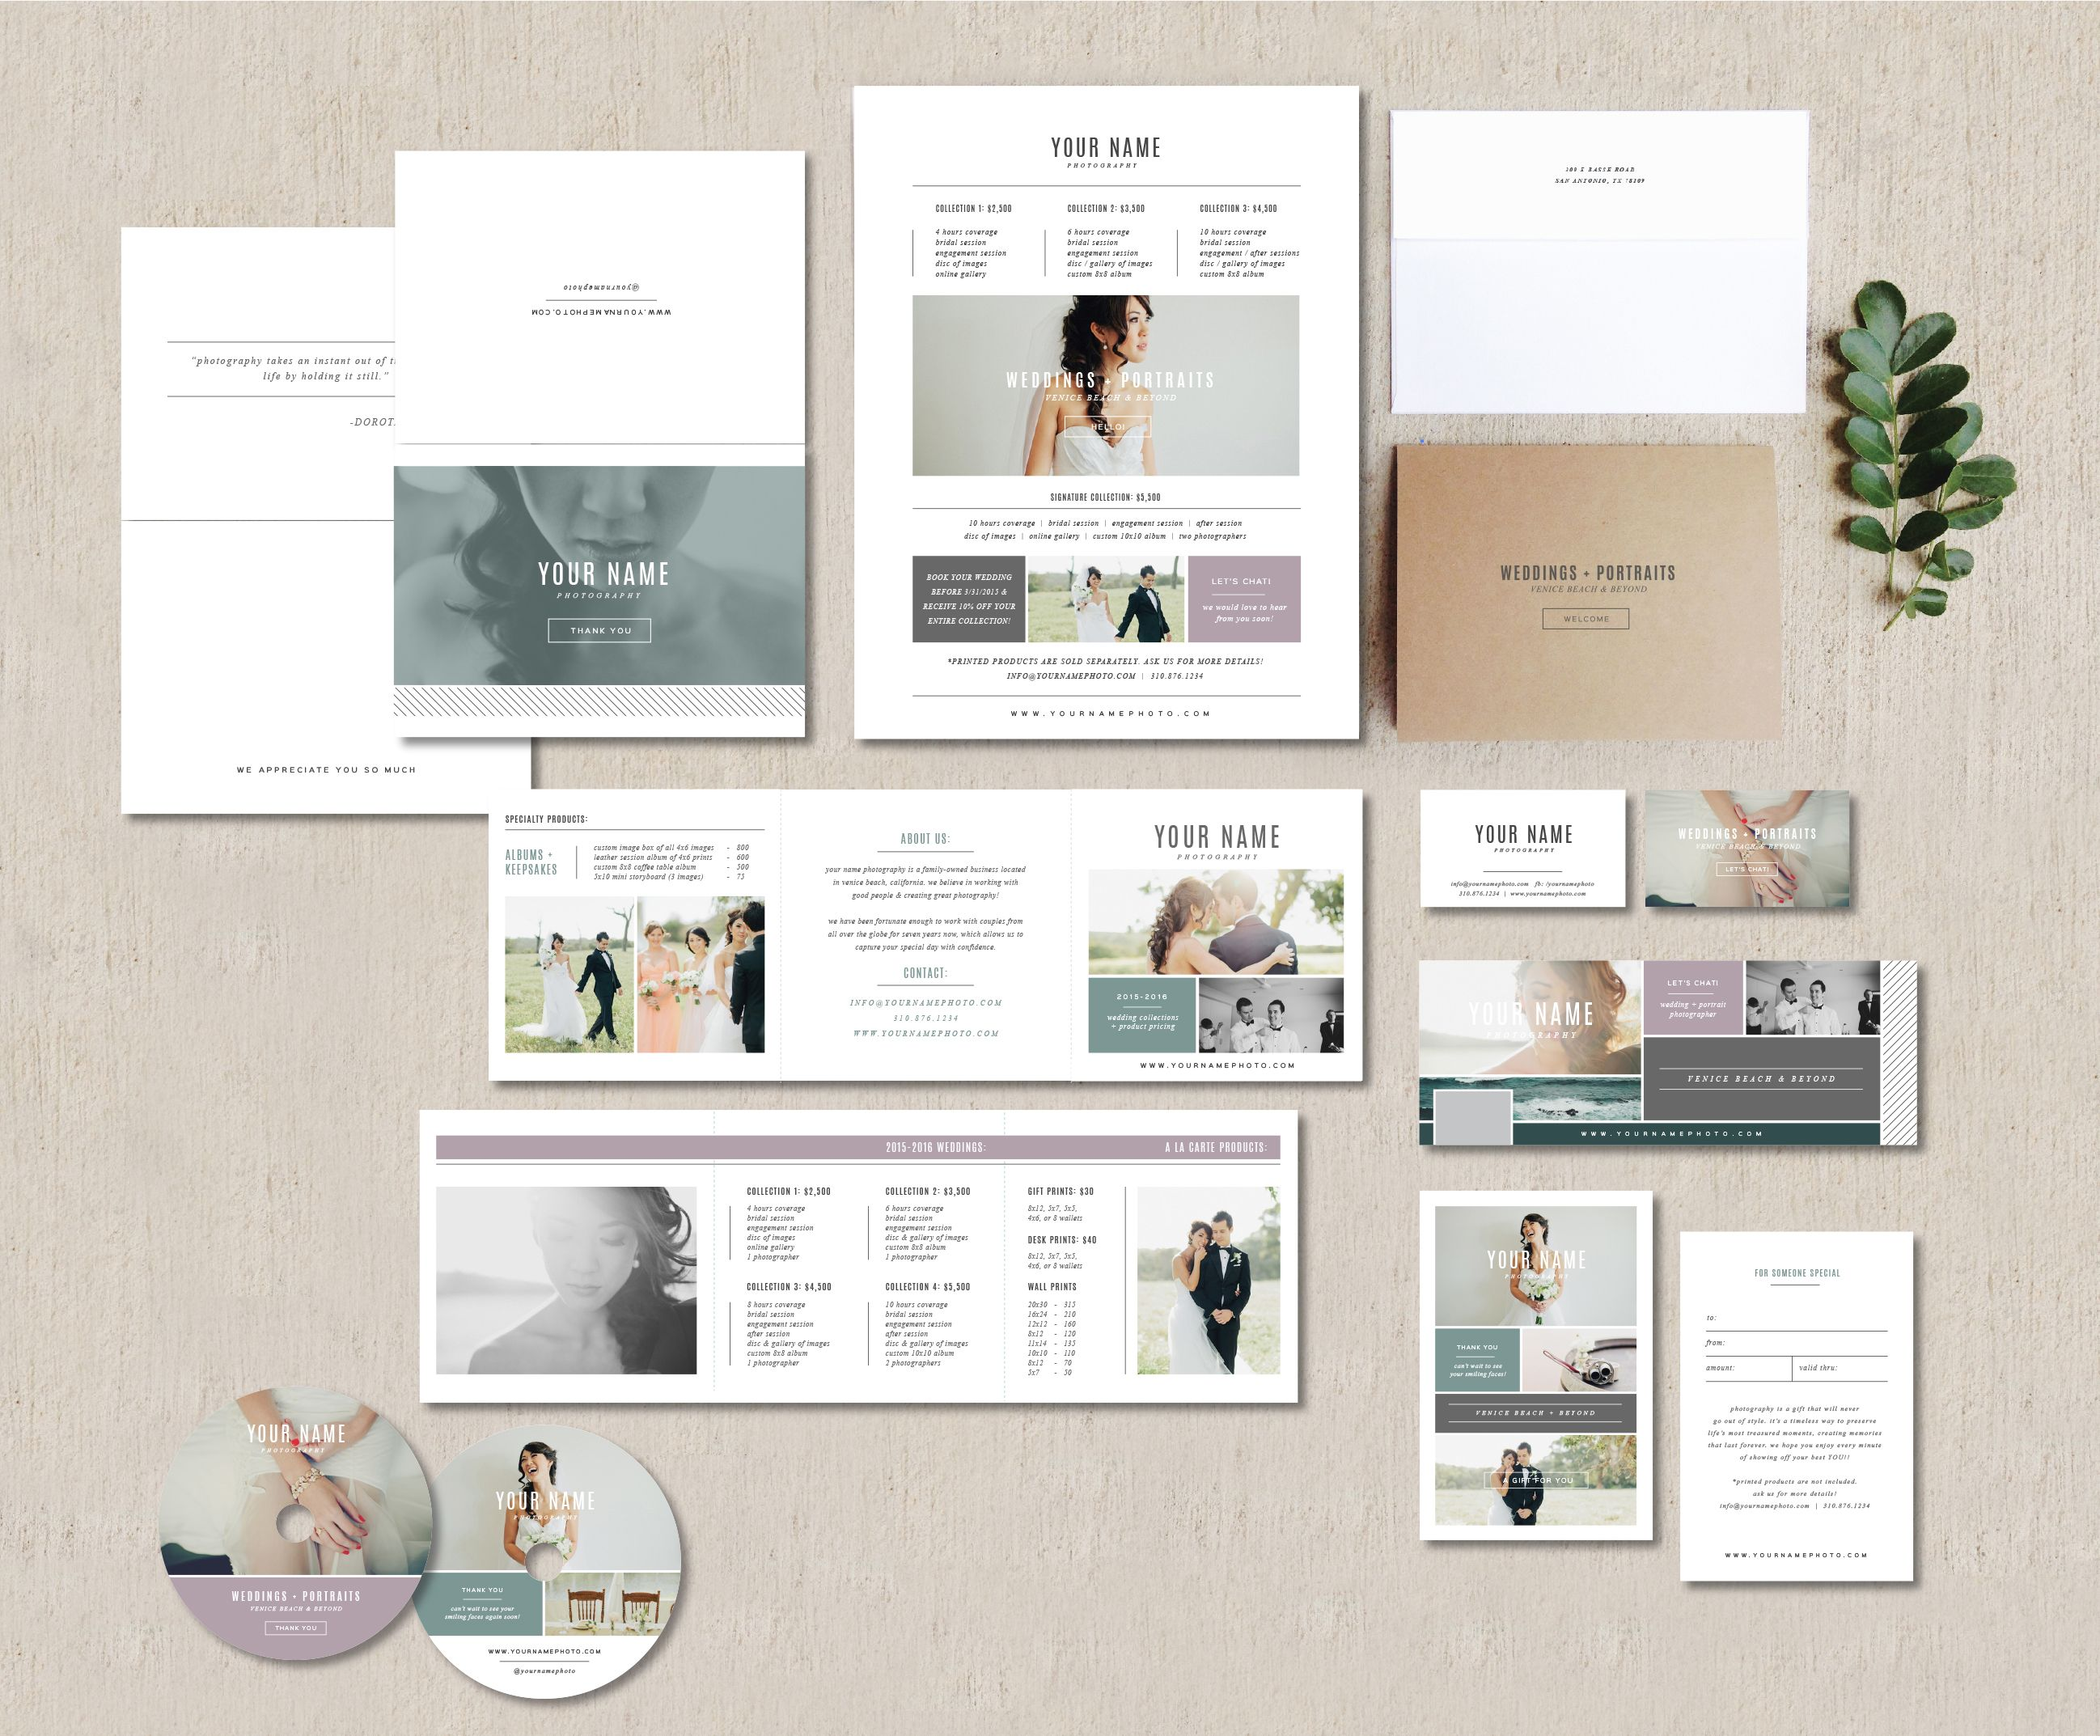 photography logos, photo marketing, save the date photo cards, photoshop designs, and psd templates